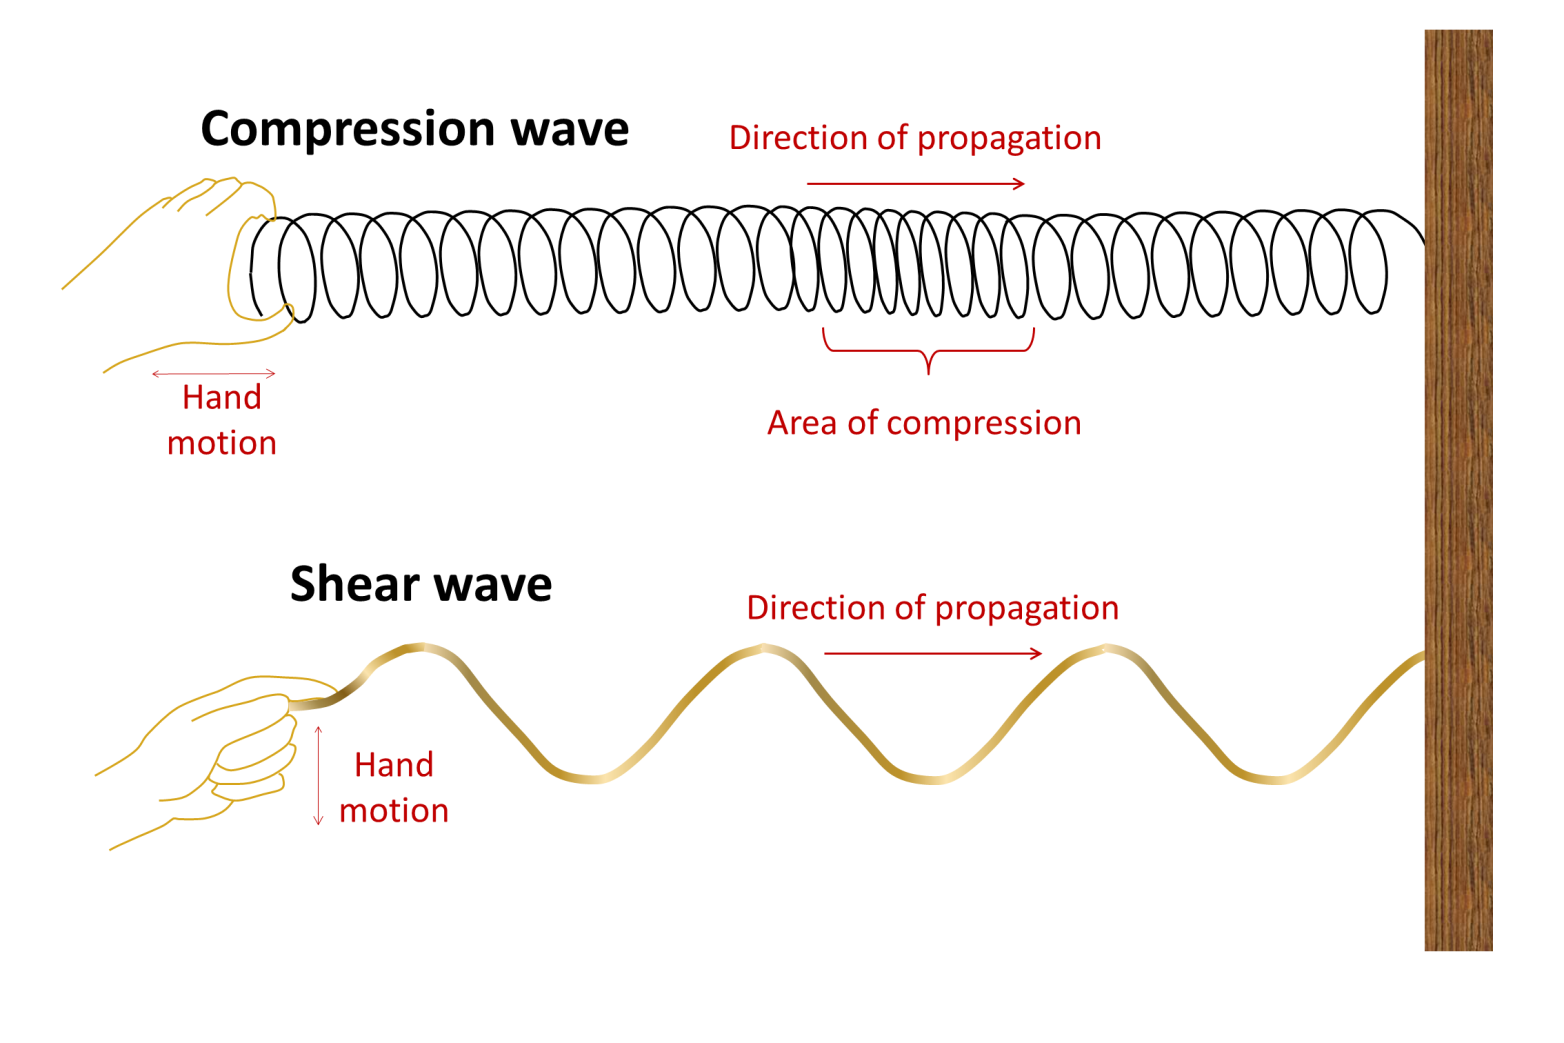 A compression wave can be illustrated by a spring (like a Slinky) that is given a sharp push at one end. A shear wave can be illustrated by a rope that is given a quick flick. [SE]